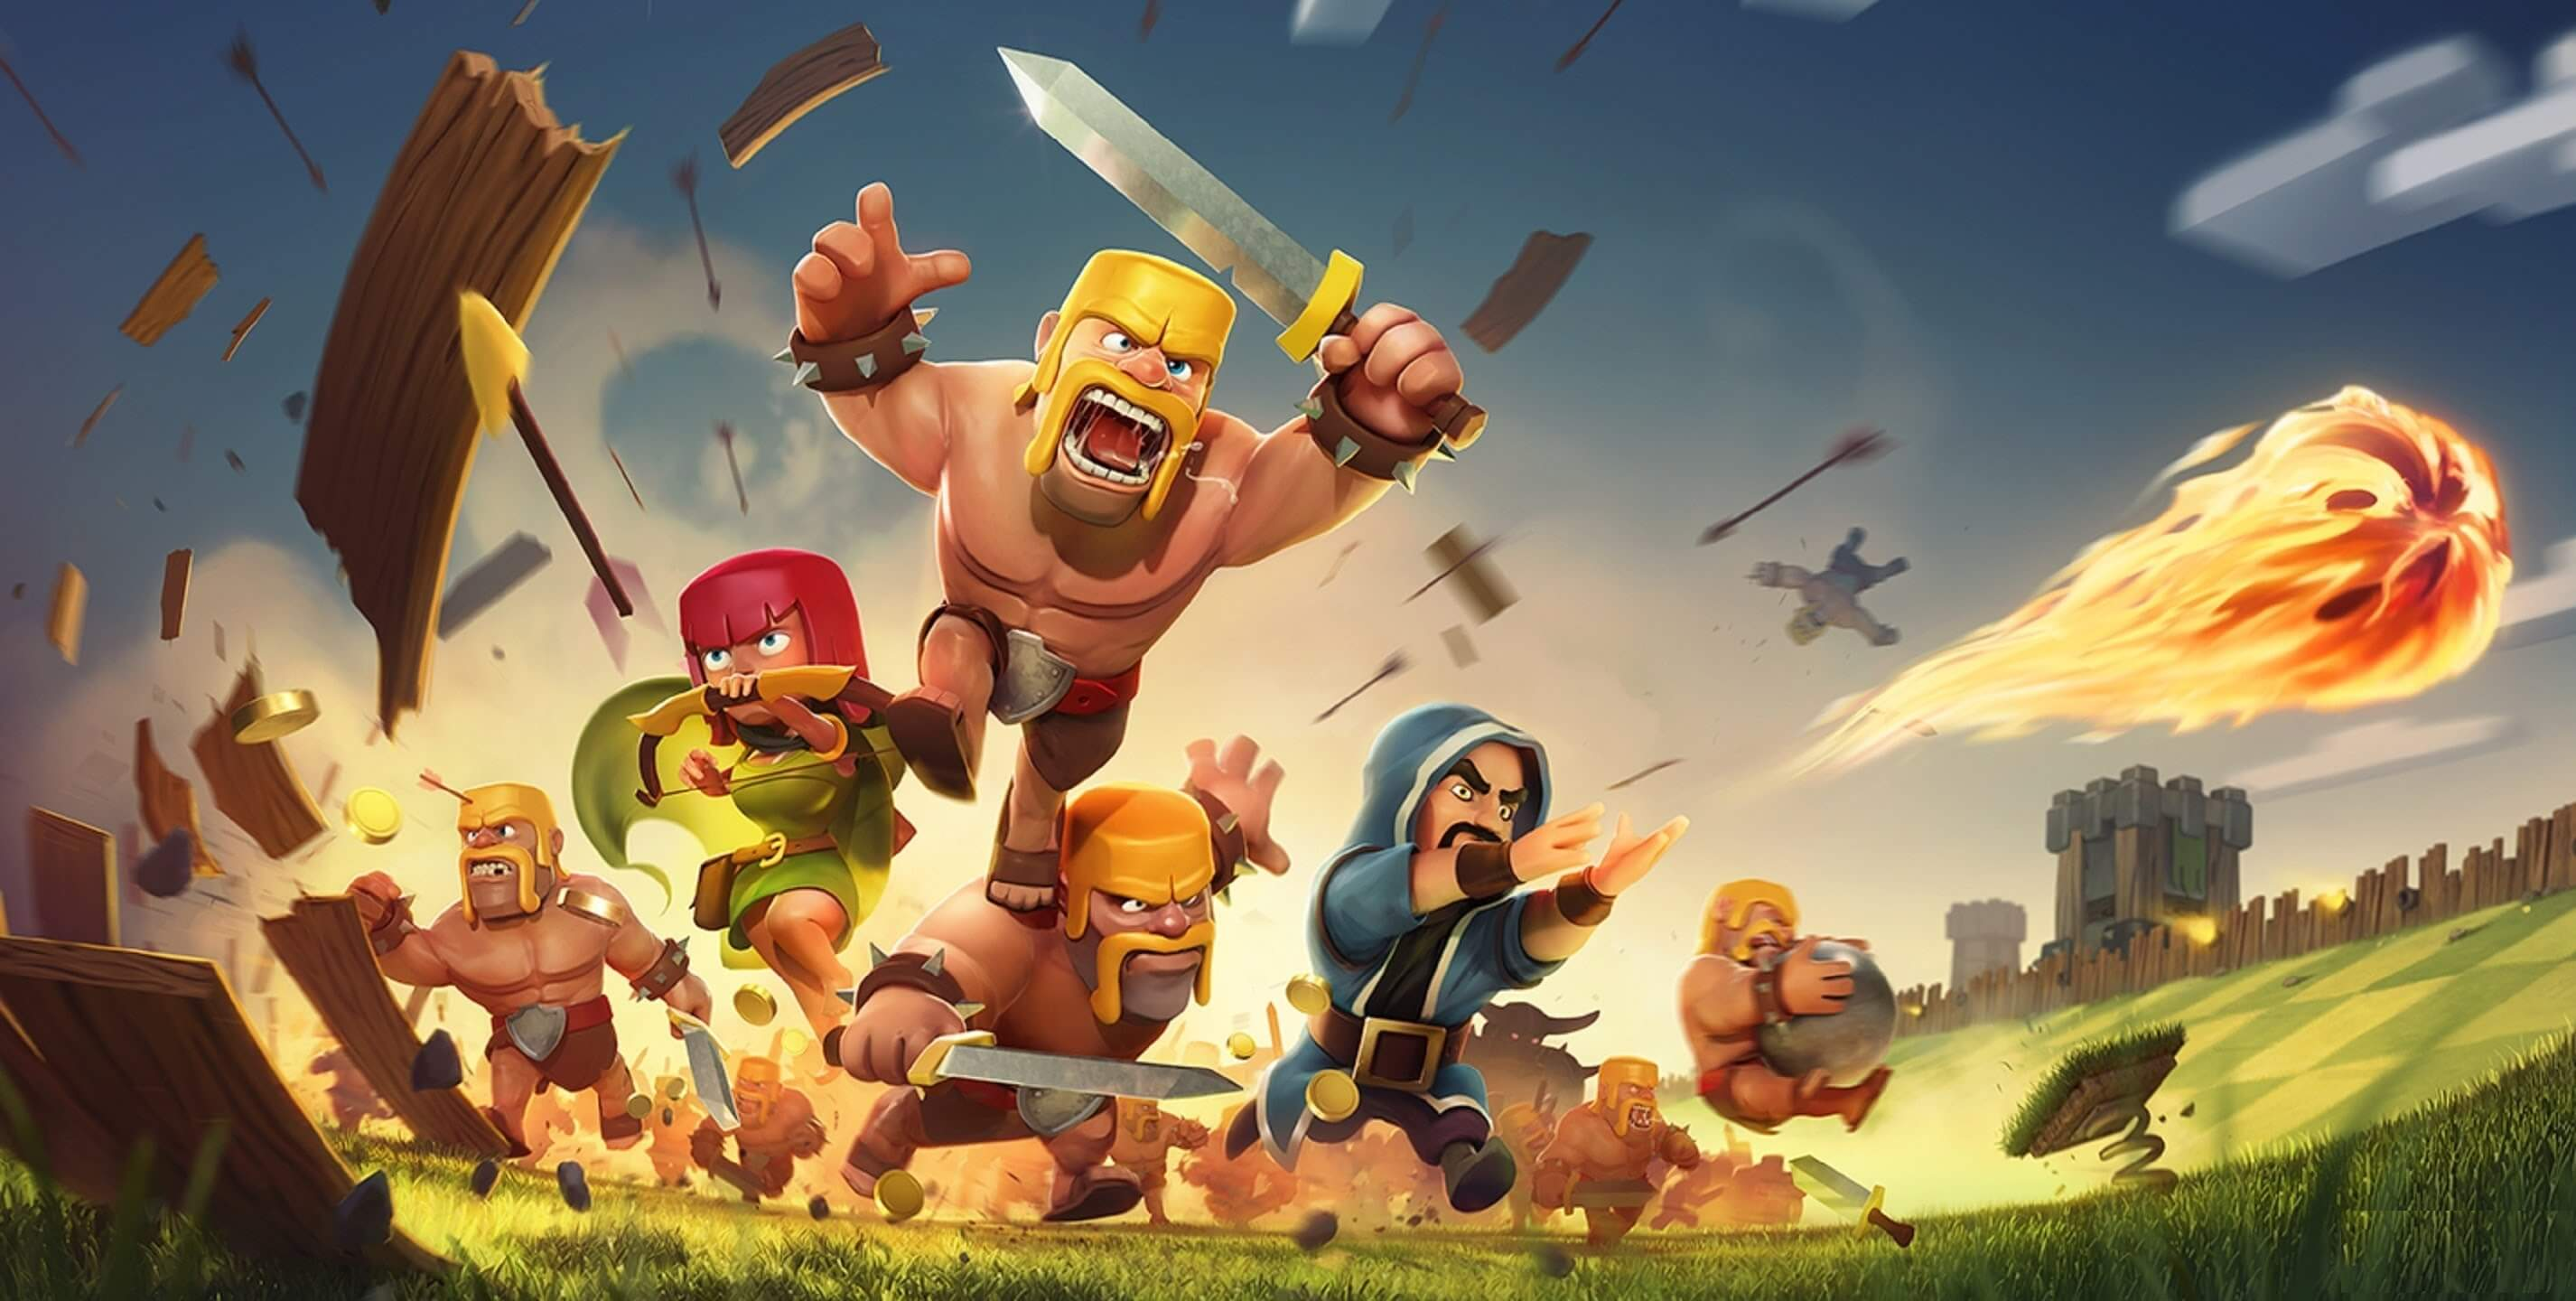 Clash of Clans Characters HD Wallpapers